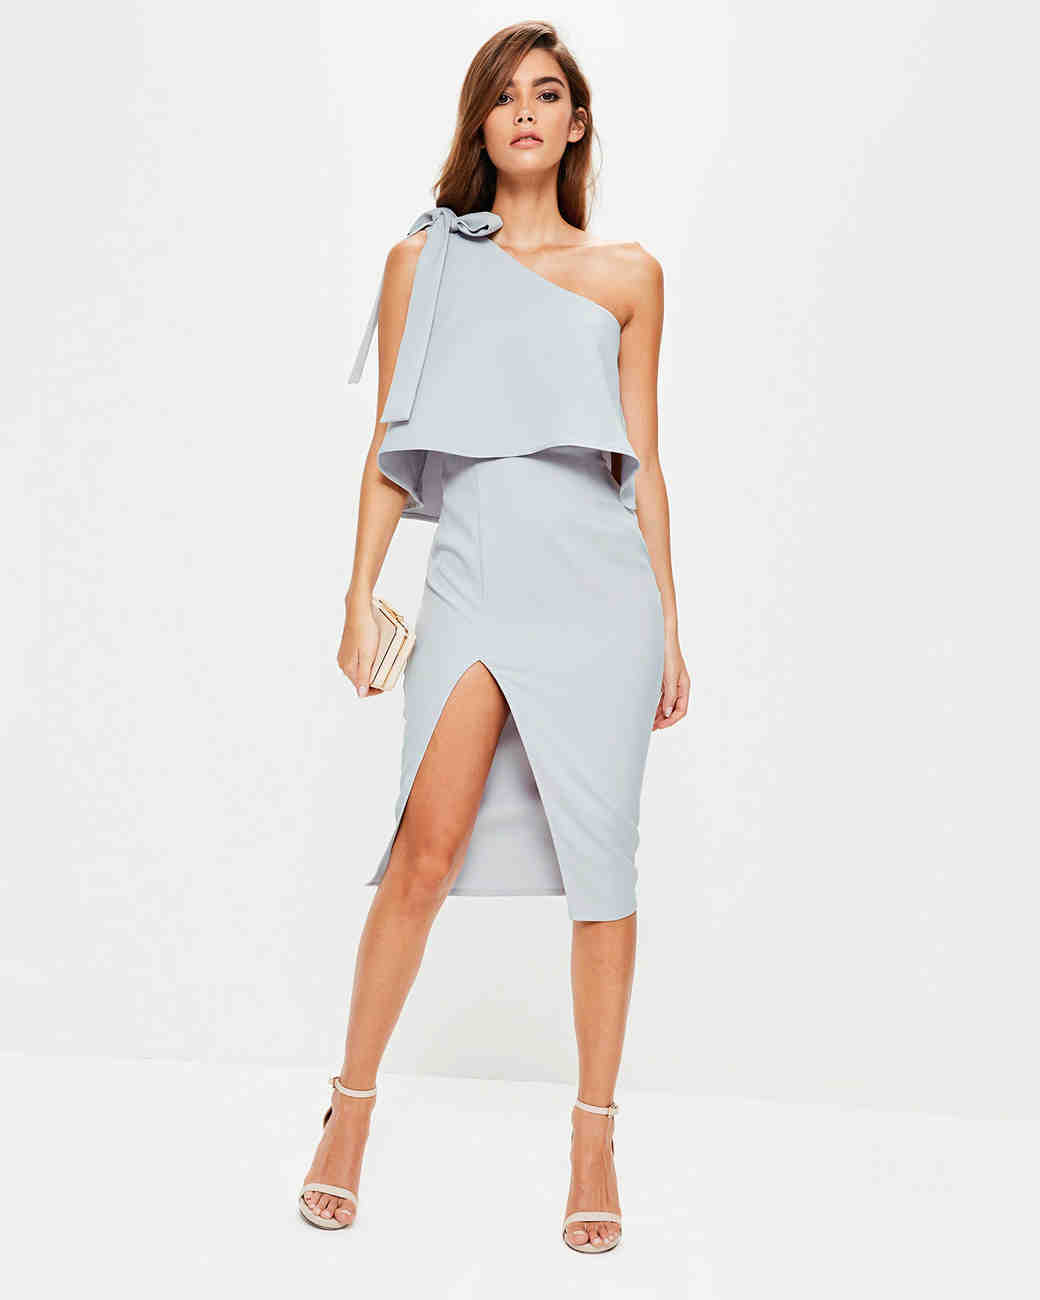 Dresses summer for weddings guests photo